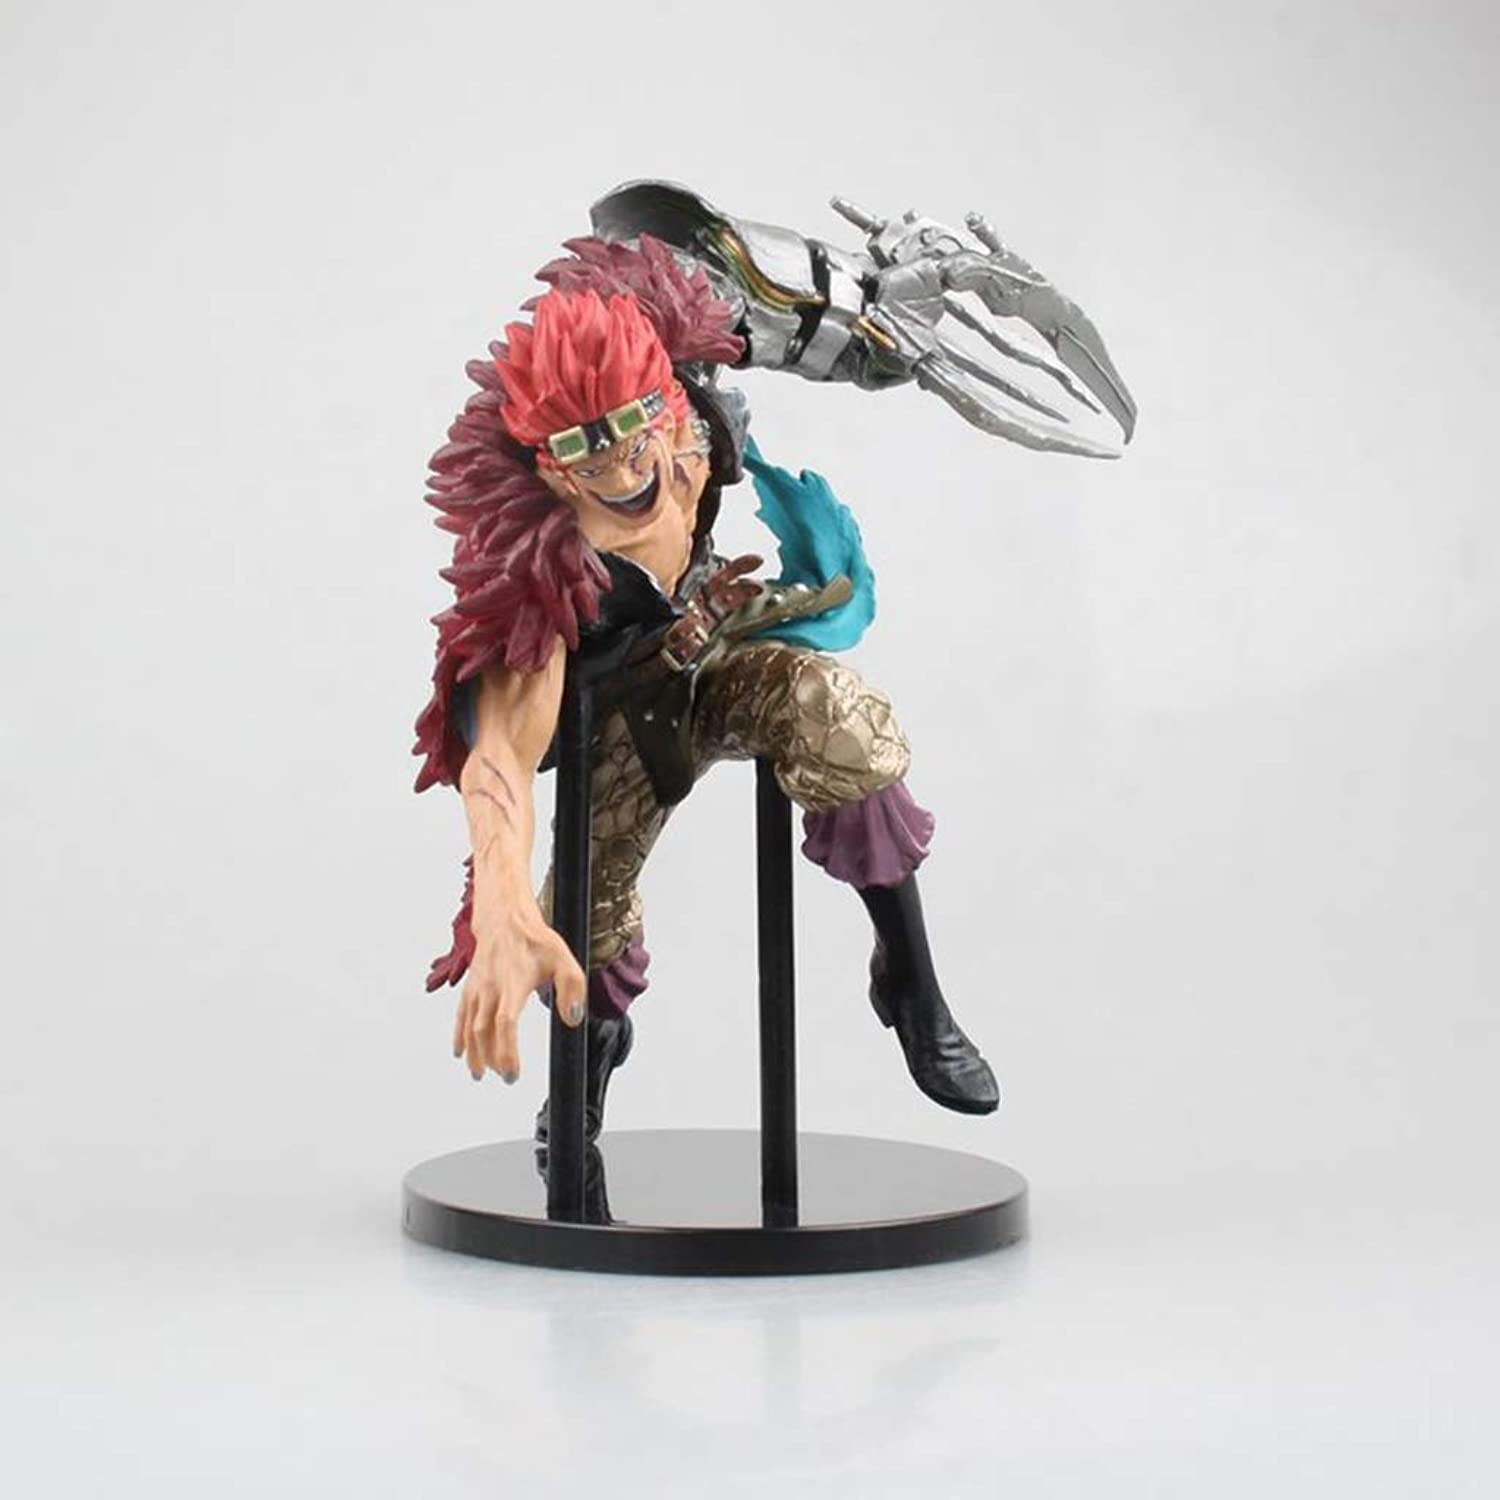 LJBOZ One Piece Anime Statue Eustass Kid Toy Model Group greenical Static PVC Anime Decoration Crafts Collection 5.9in Toy statue